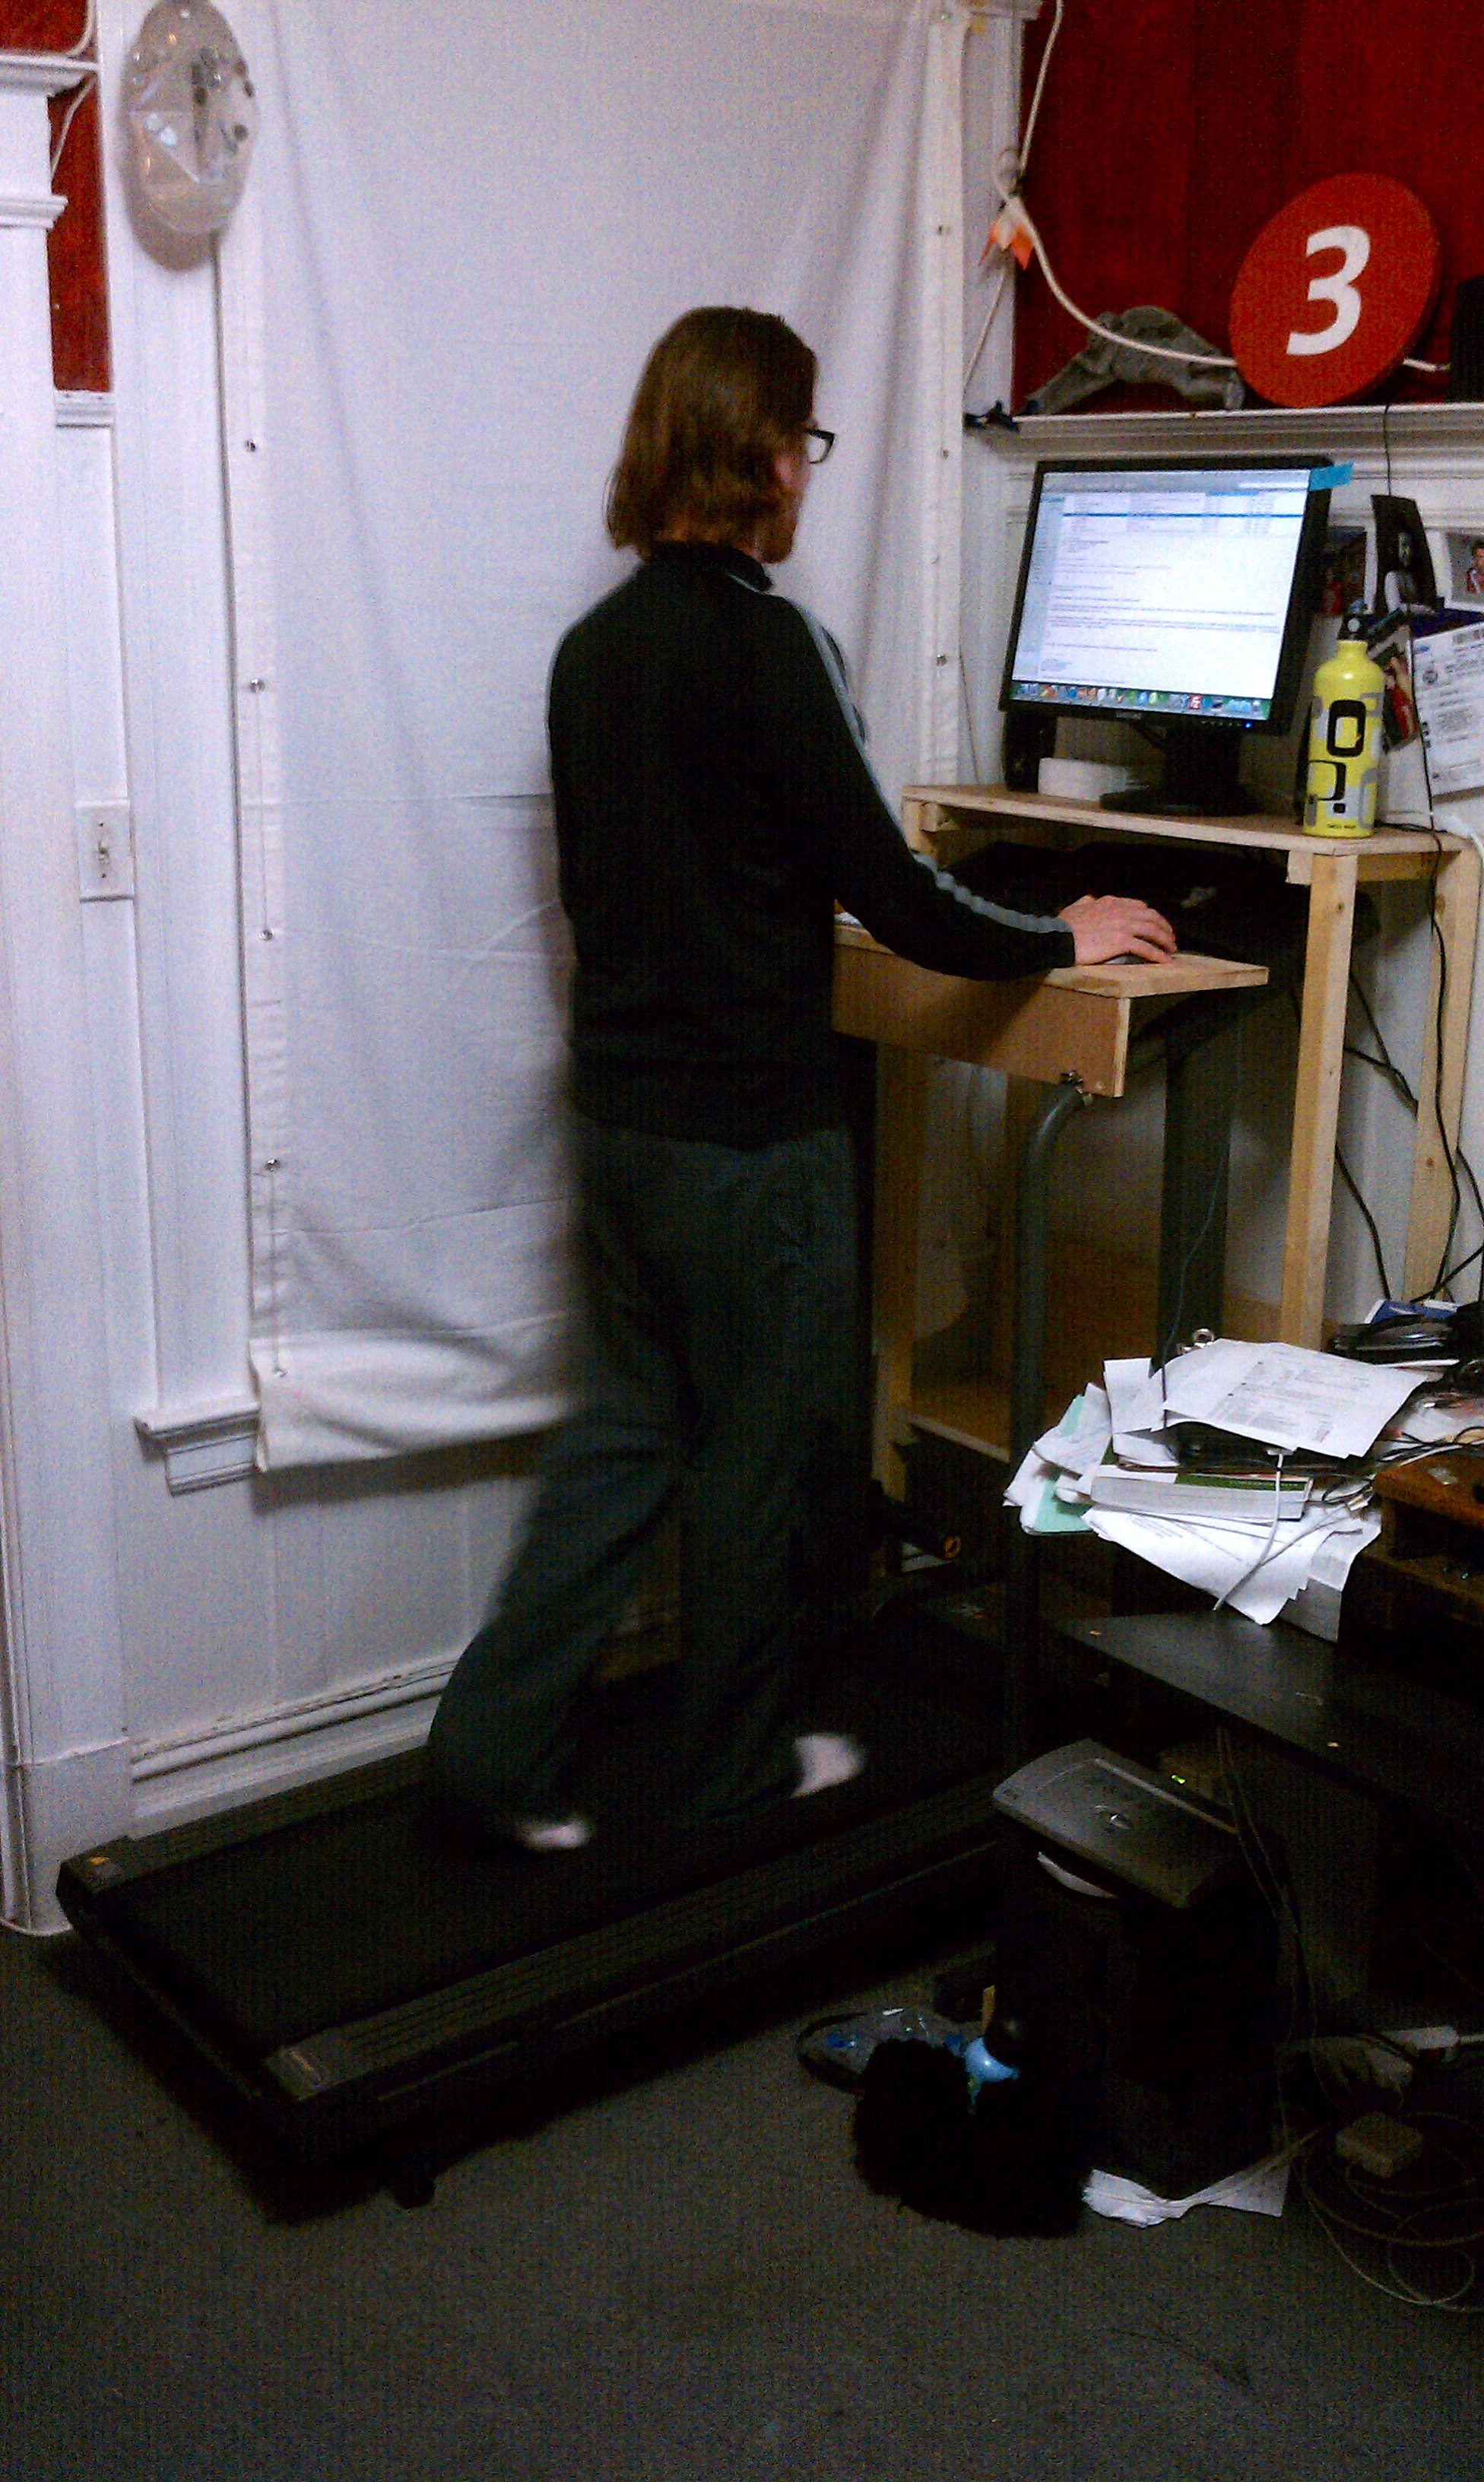 Picture of Freestanding Collapsible Treadmill Desk